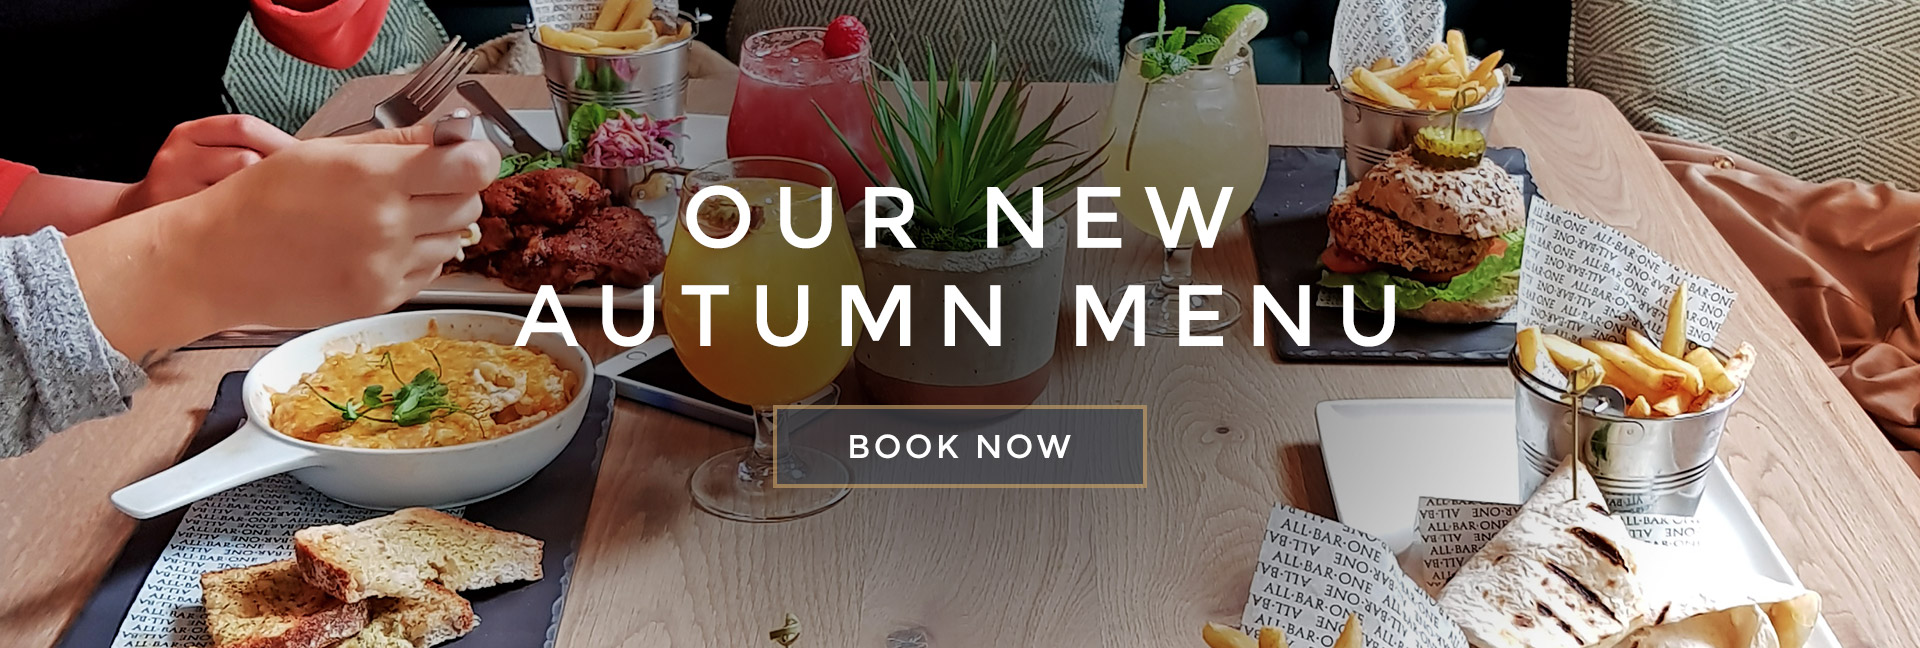 Our new Autumn menu at All Bar One Cambridge - Book now